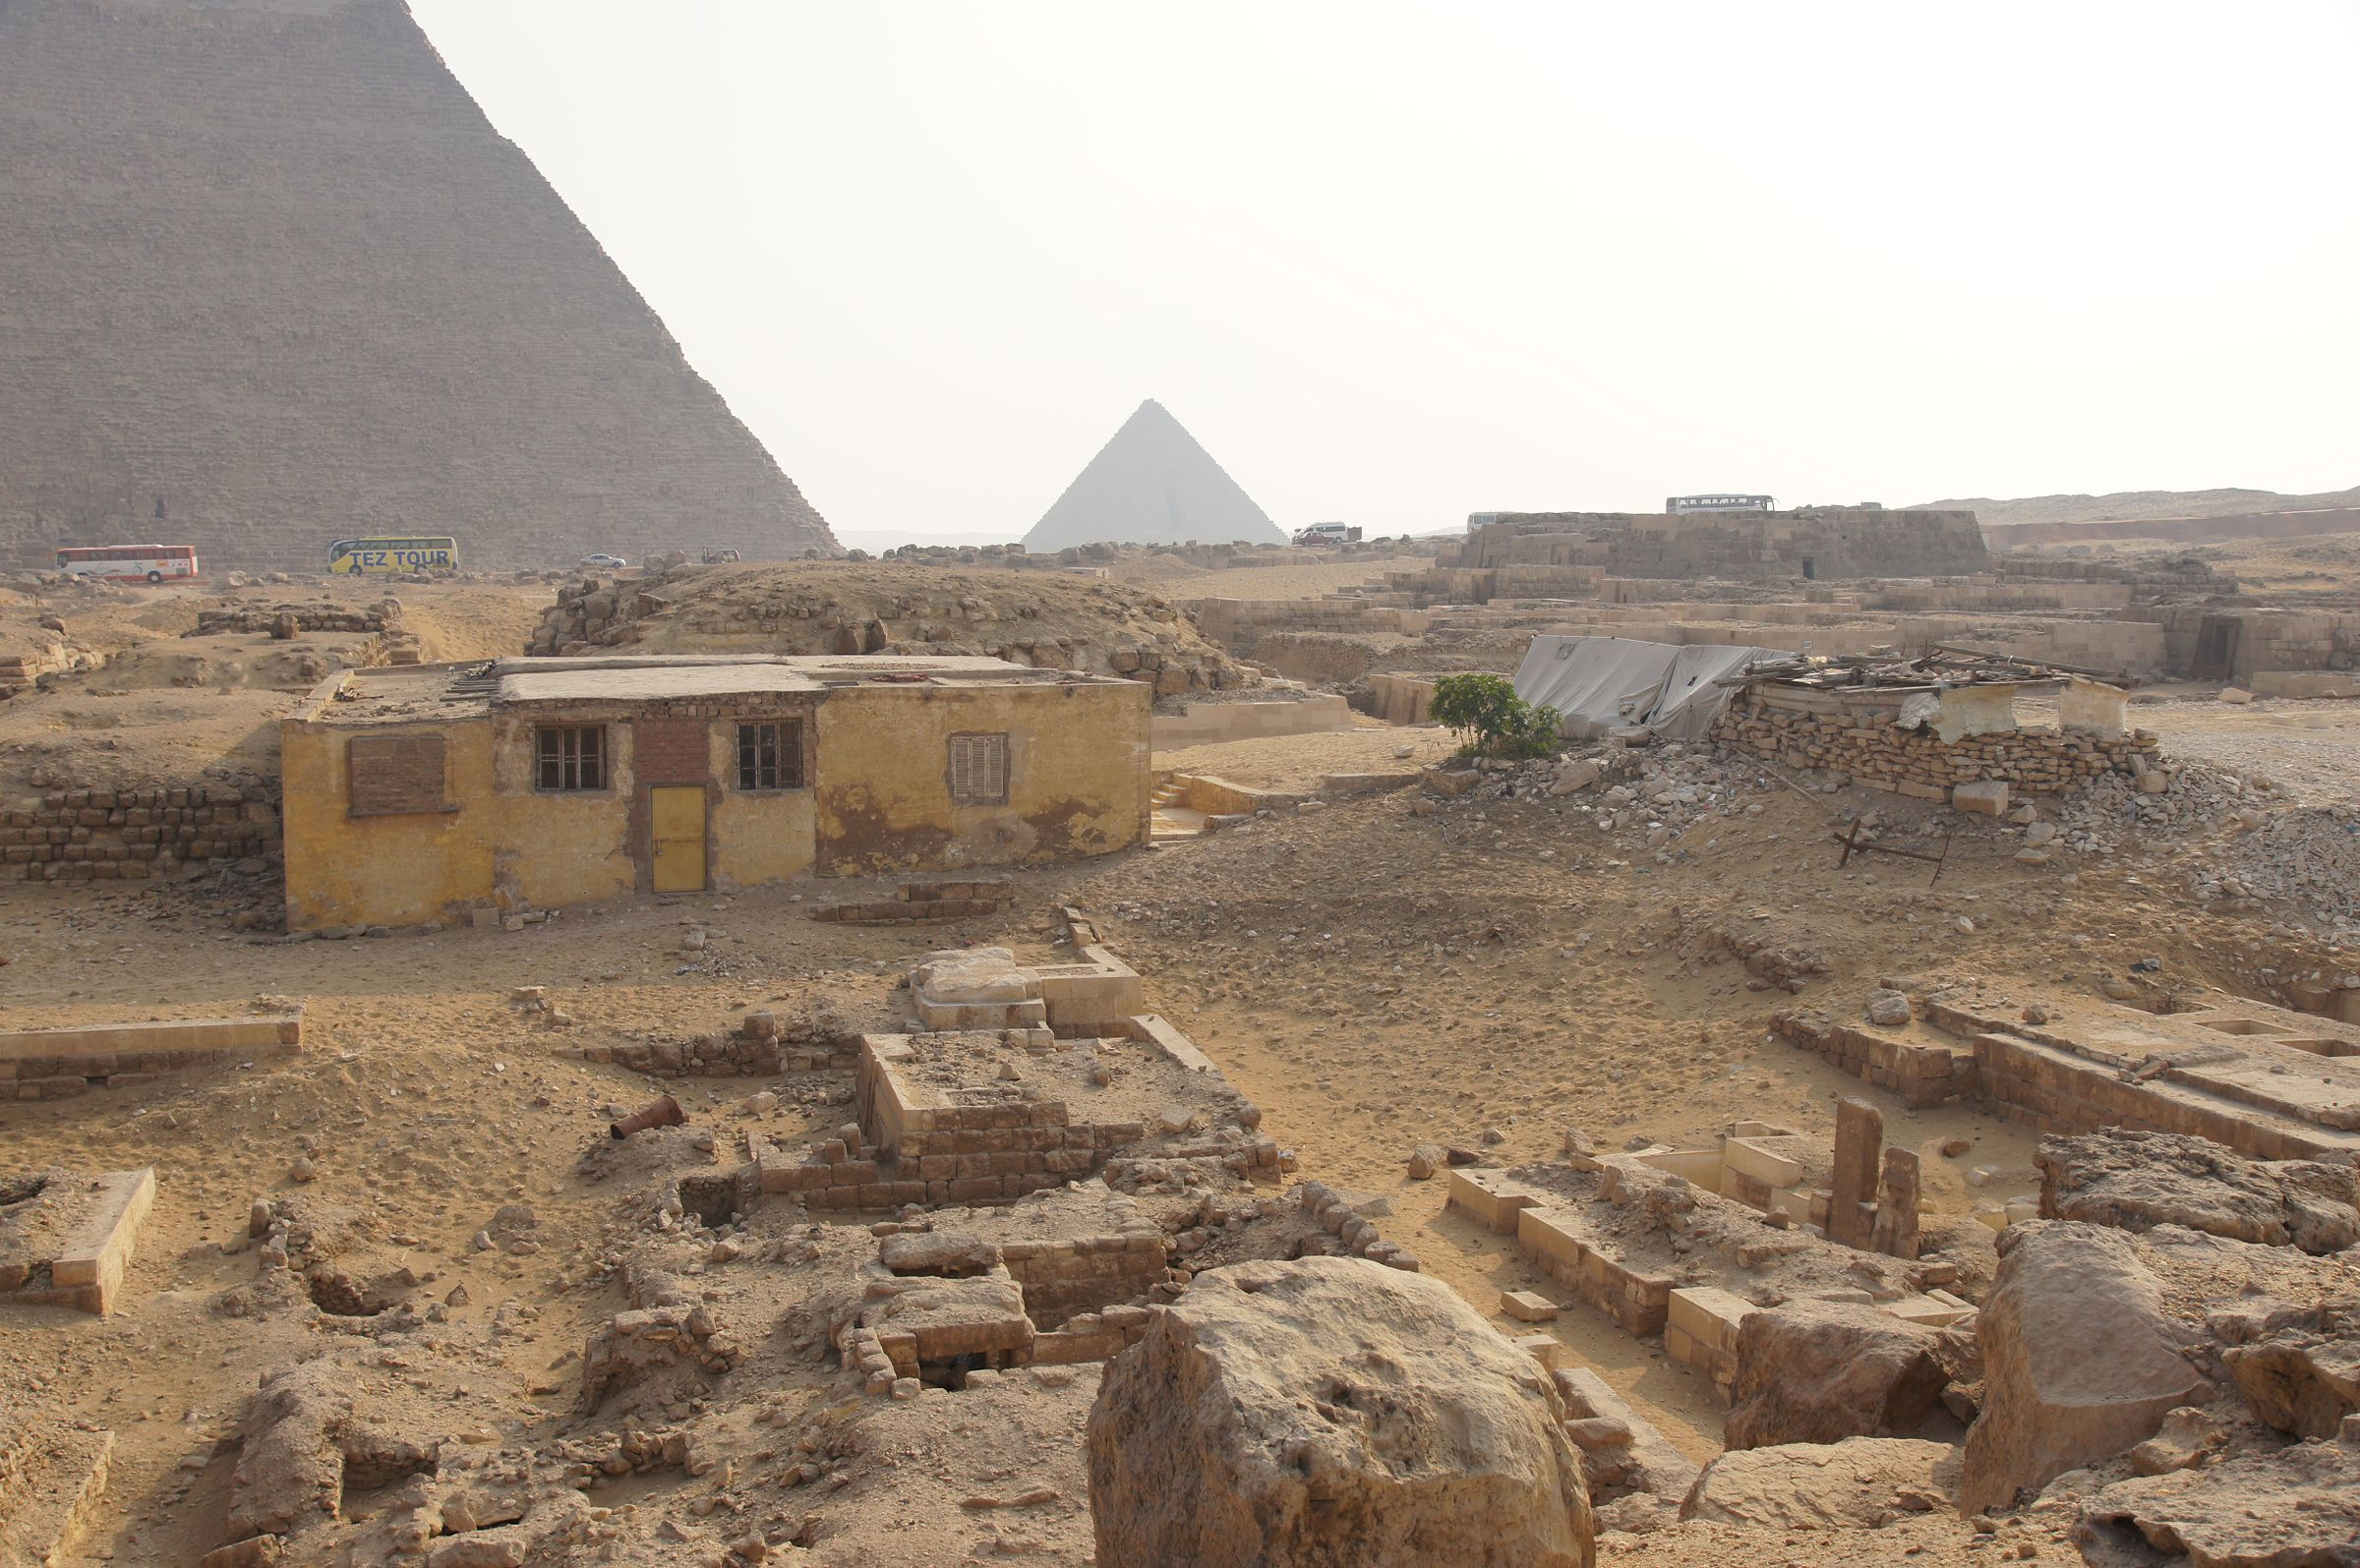 Western Cemetery: Site: Giza; View: S 2228/2231, S 2221/2224, S 2430/2449, S 2217, S 2219, S 2434, D 110, S 2191/2199, S 2215?, S 2437?, Sensen, S 2441/2446, D 108, S 2181/2260, S 2435/2443, D 107, D 105, Niankhhathor, D 213, D 212, D 211, D 214, D 210, G 4160, G 4000